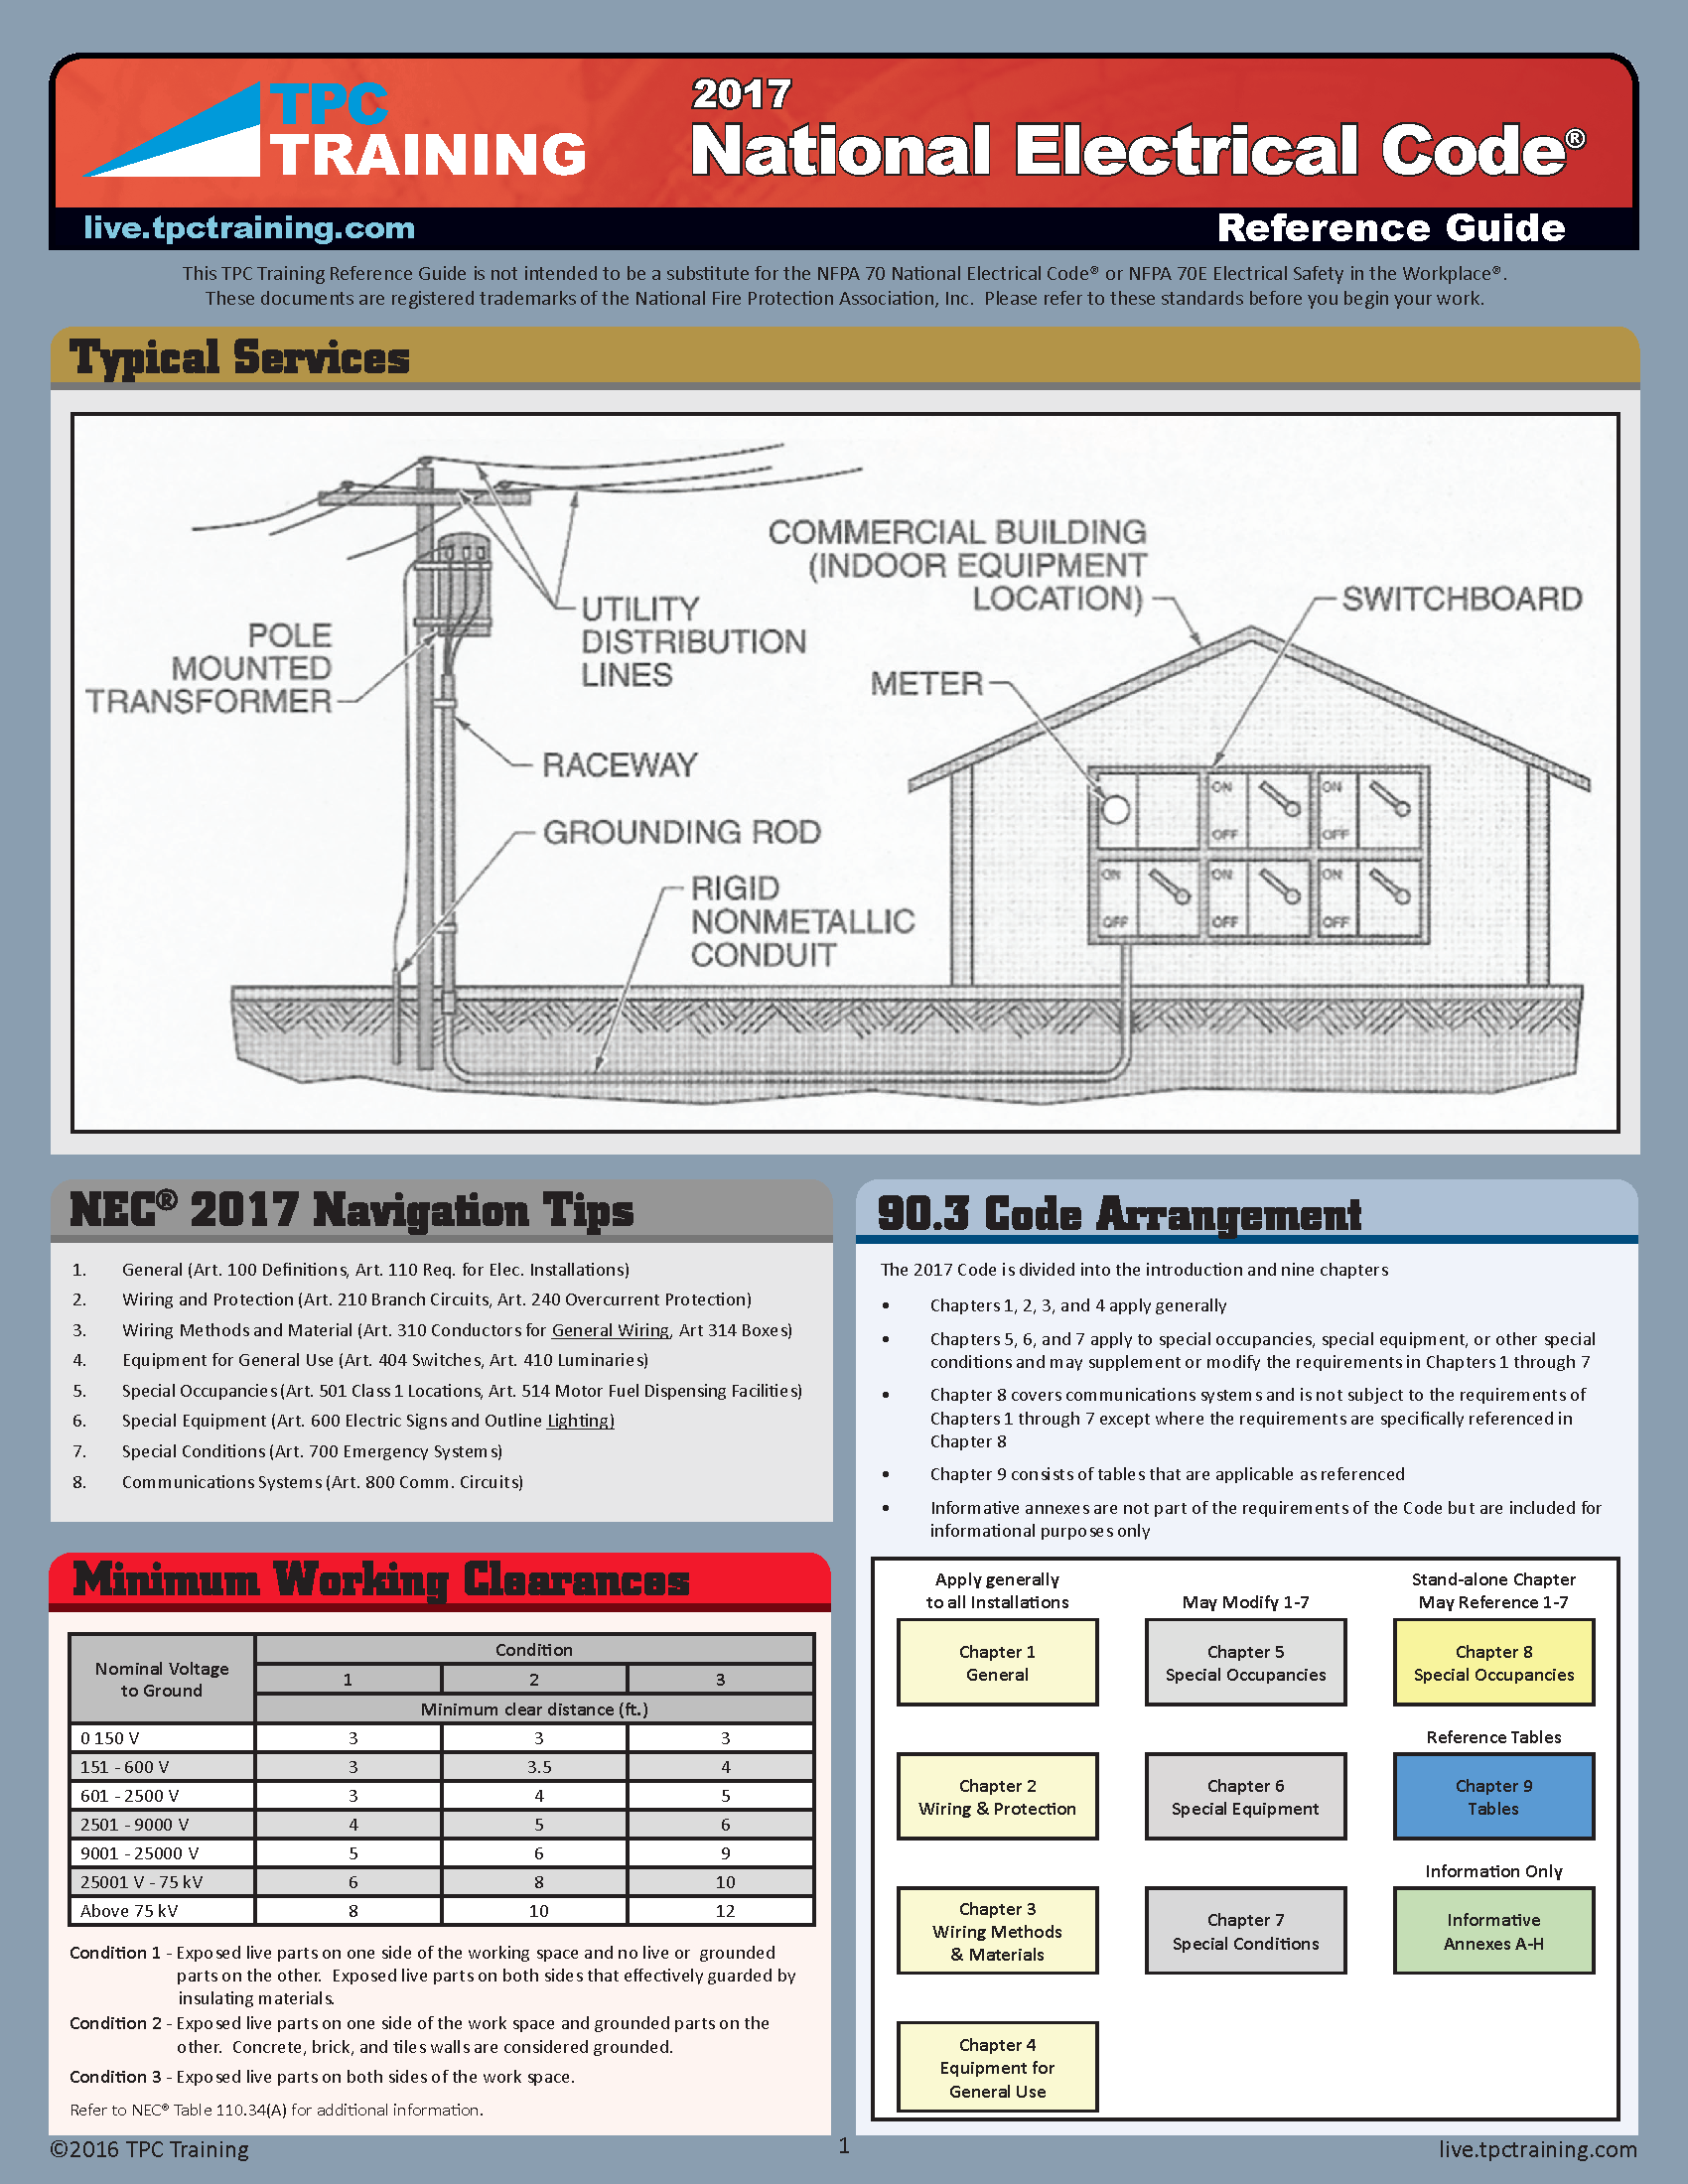 National Electrical Code Reference Guide